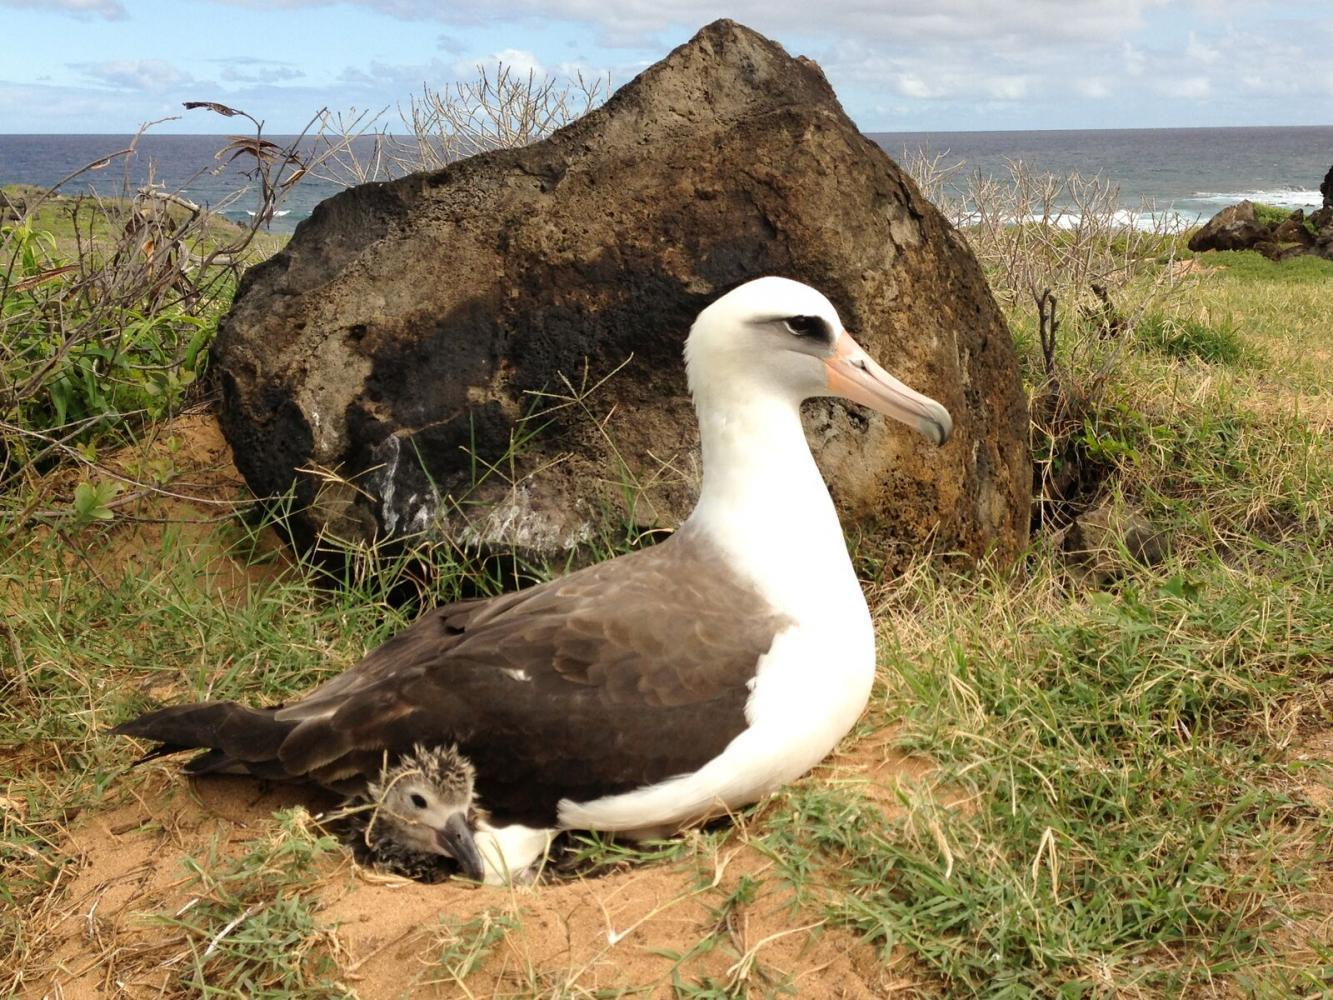 The Laysan albatross, a federally protected species, with its chick at the Kaena Point Natural Area Reserve in Hawaii.